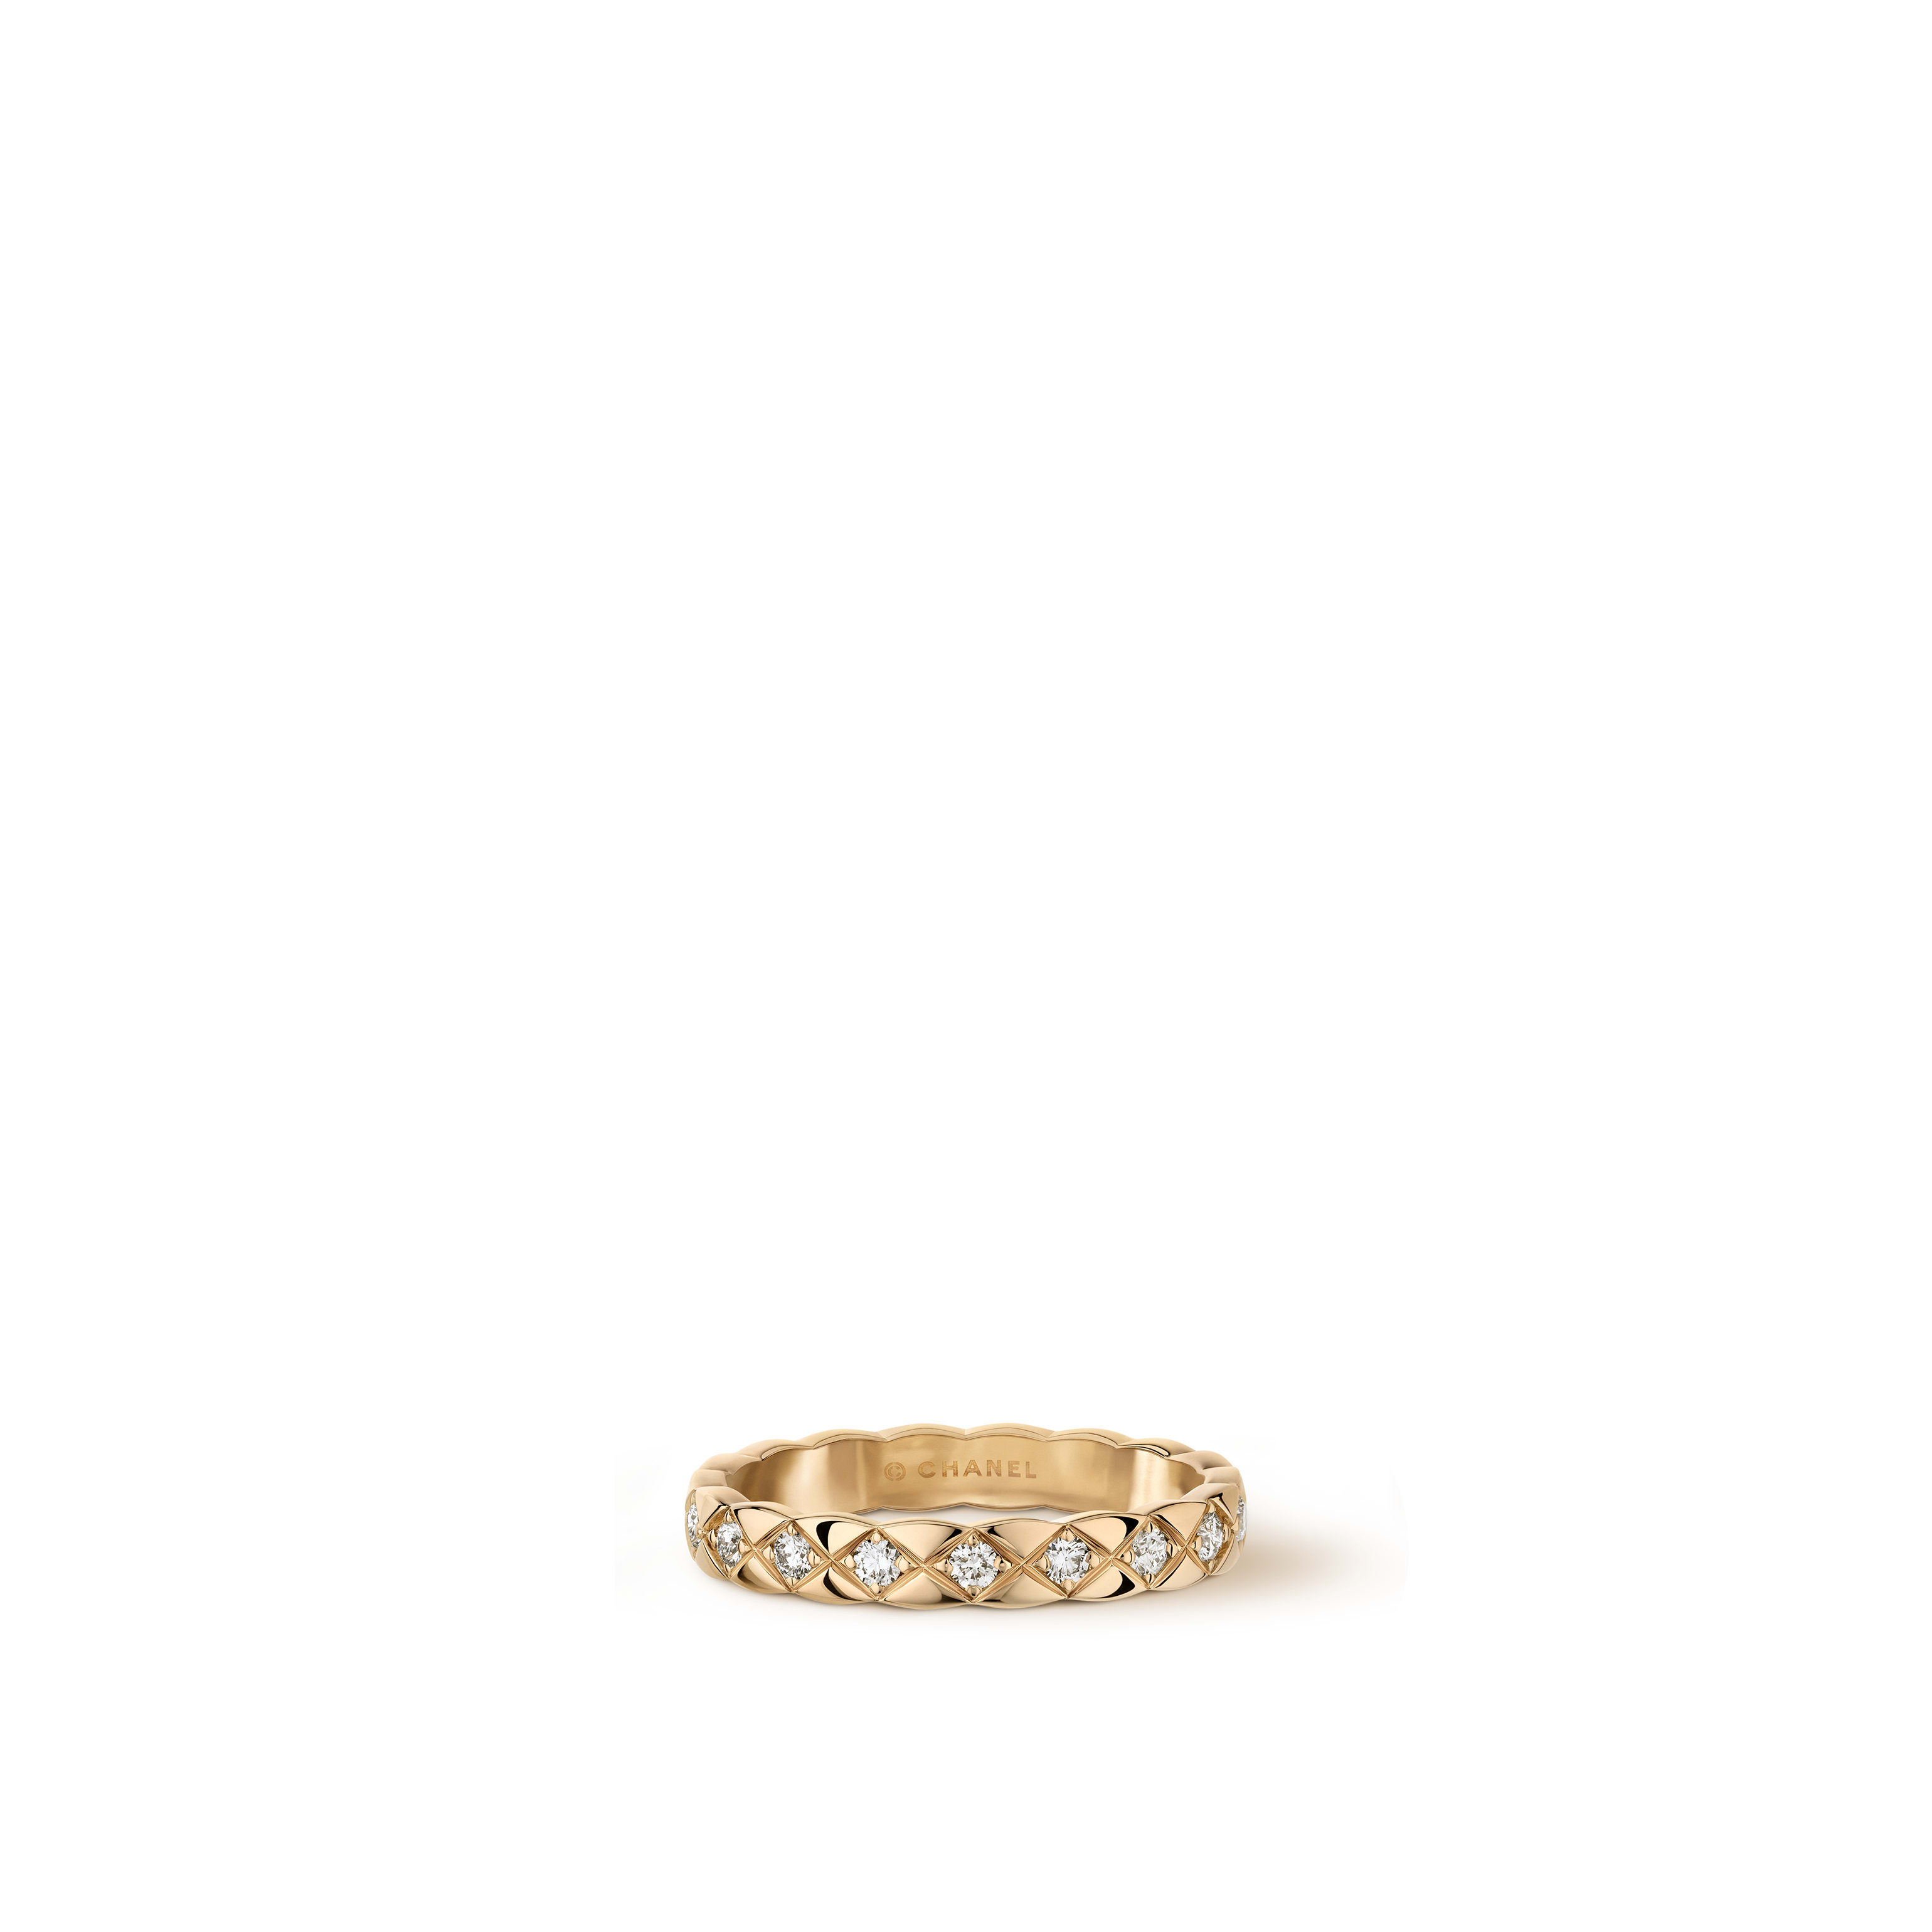 Coco Crush ring - Quilted motif, 18K BEIGE GOLD, diamonds. Mini version. - CHANEL - Default view - see standard sized version